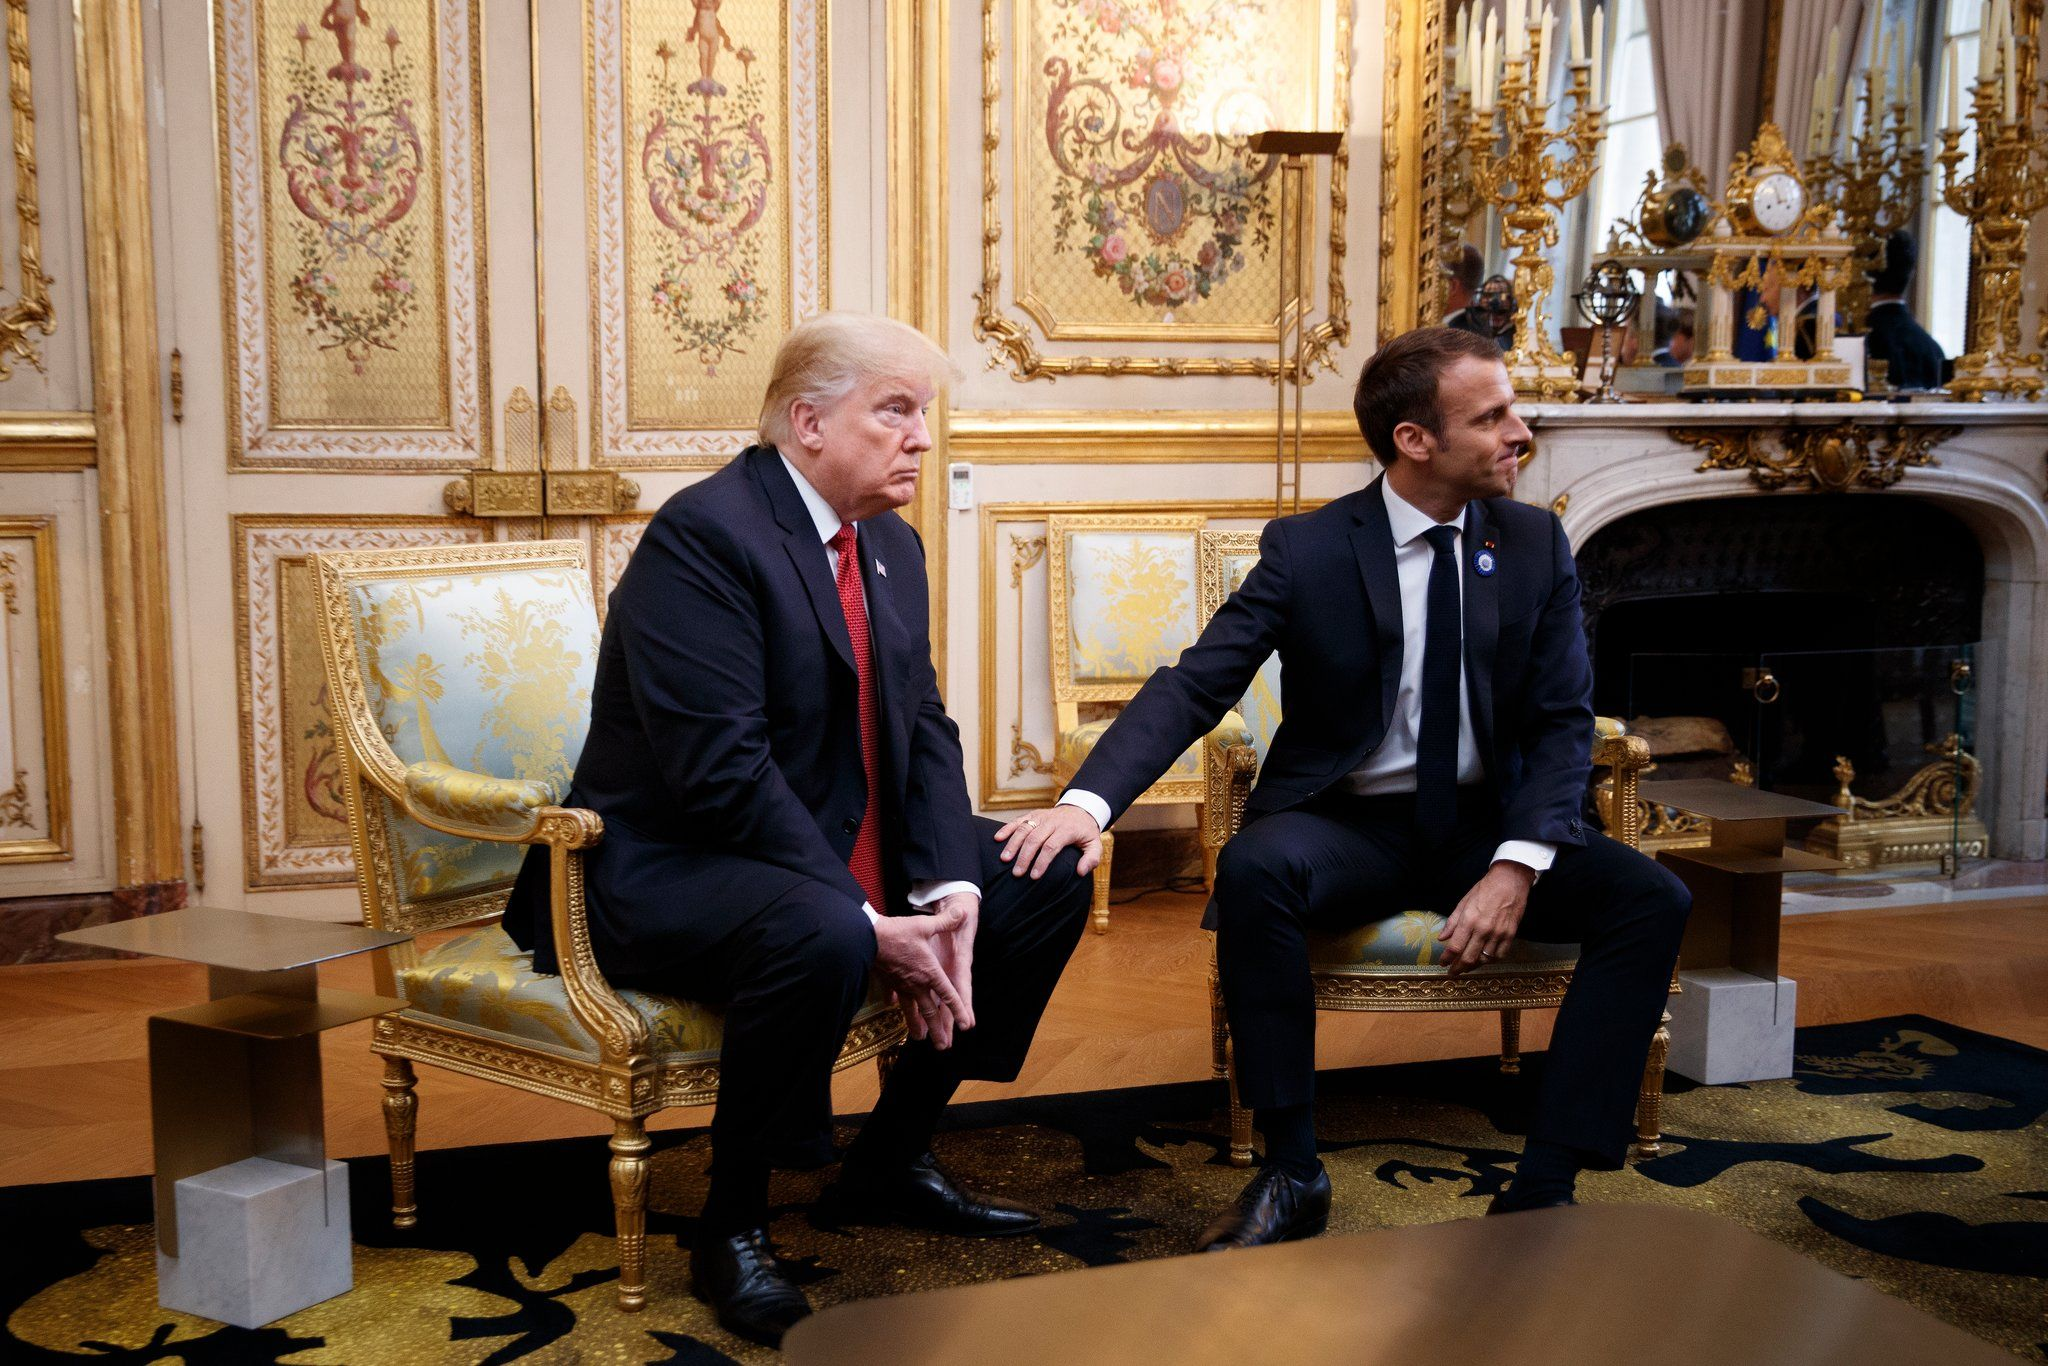 Macrons Response to Trump I Do Not Do Policy or Diplomacy